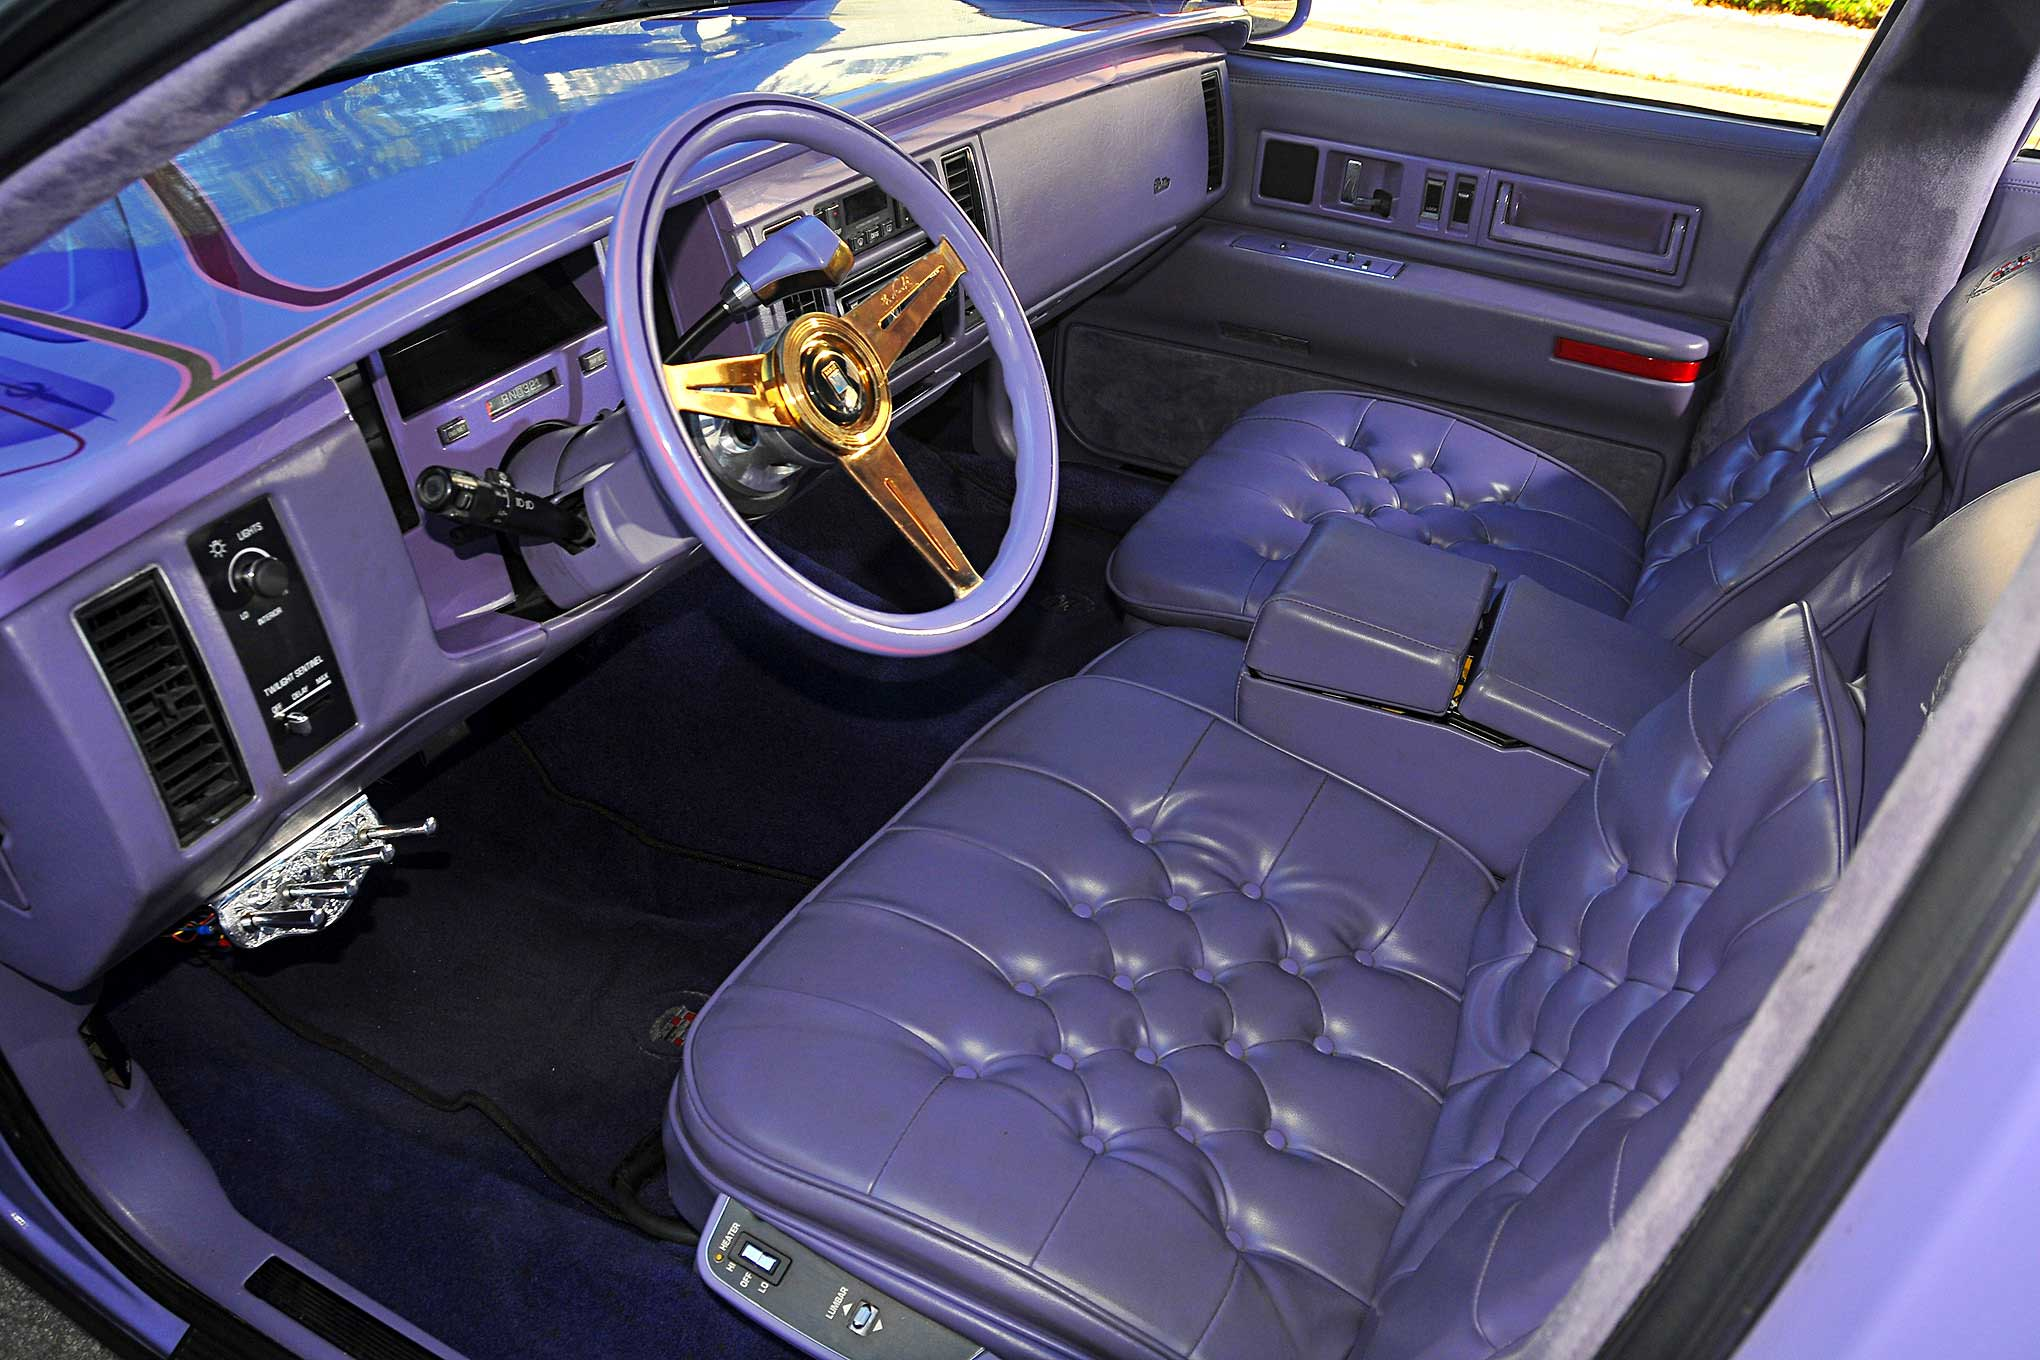 Bringing Levels To The Game With A 1995 Cadillac Fleetwood